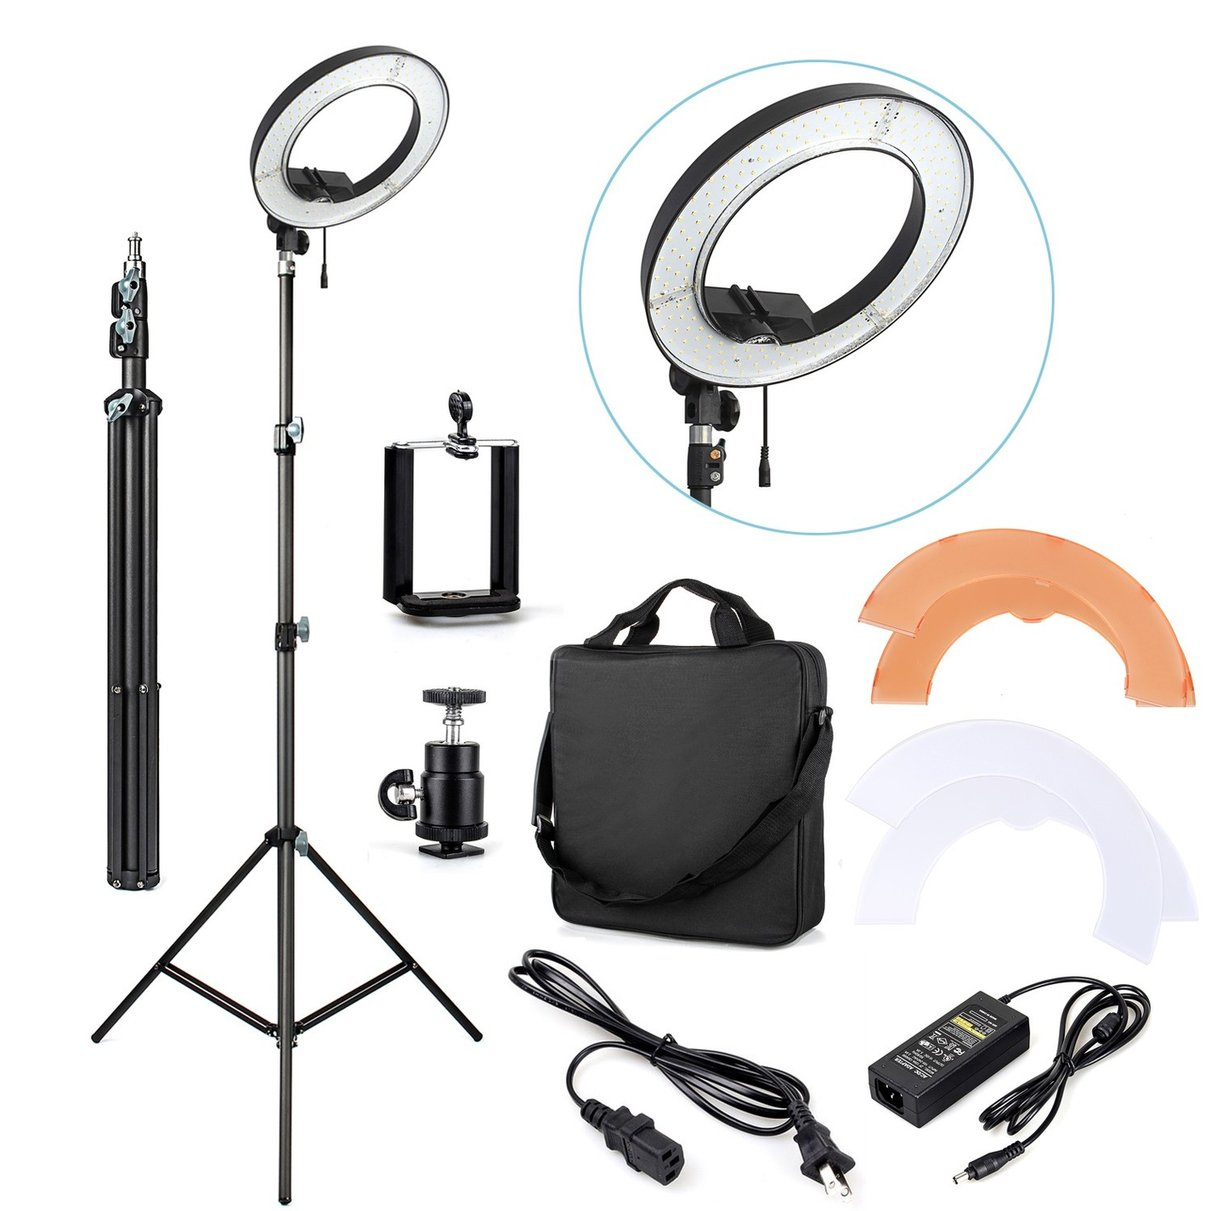 "Light Stand Cheap: ES180 180 LED 13"" Stepless Adjustable Ring Light Camera"